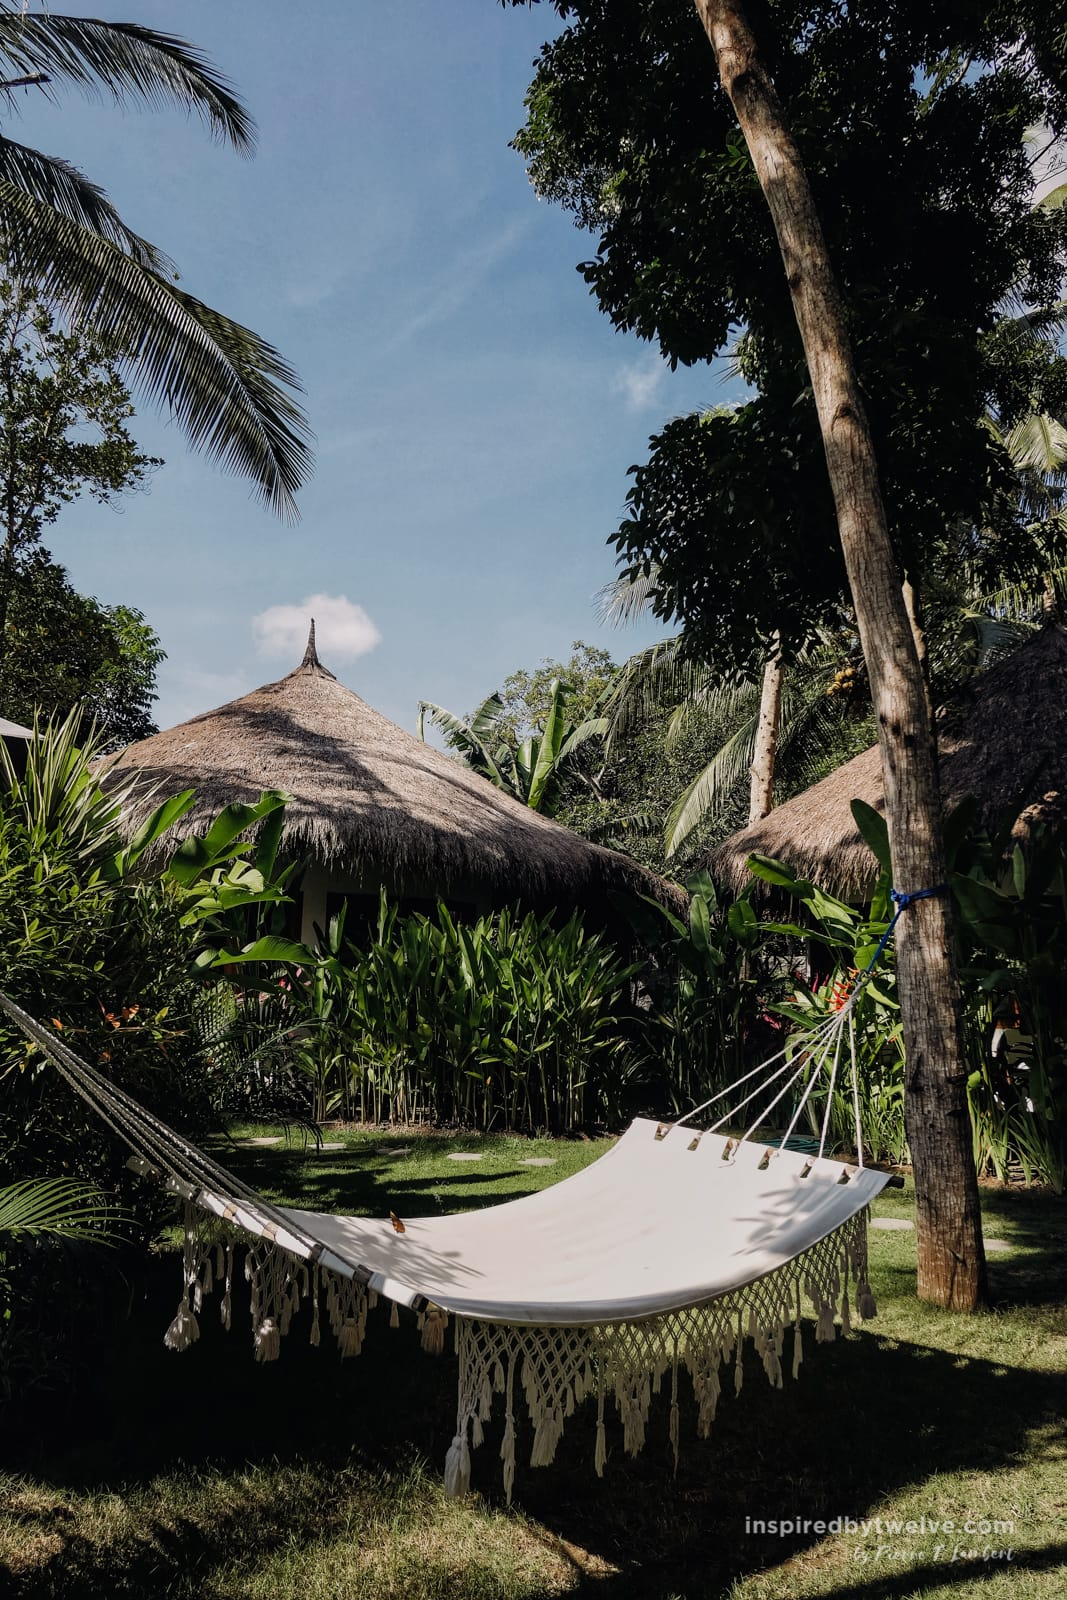 mana yoga lombok, mana retreat lombok, yoga lombok, yoga kuta lombok, yoga retreat indonesia